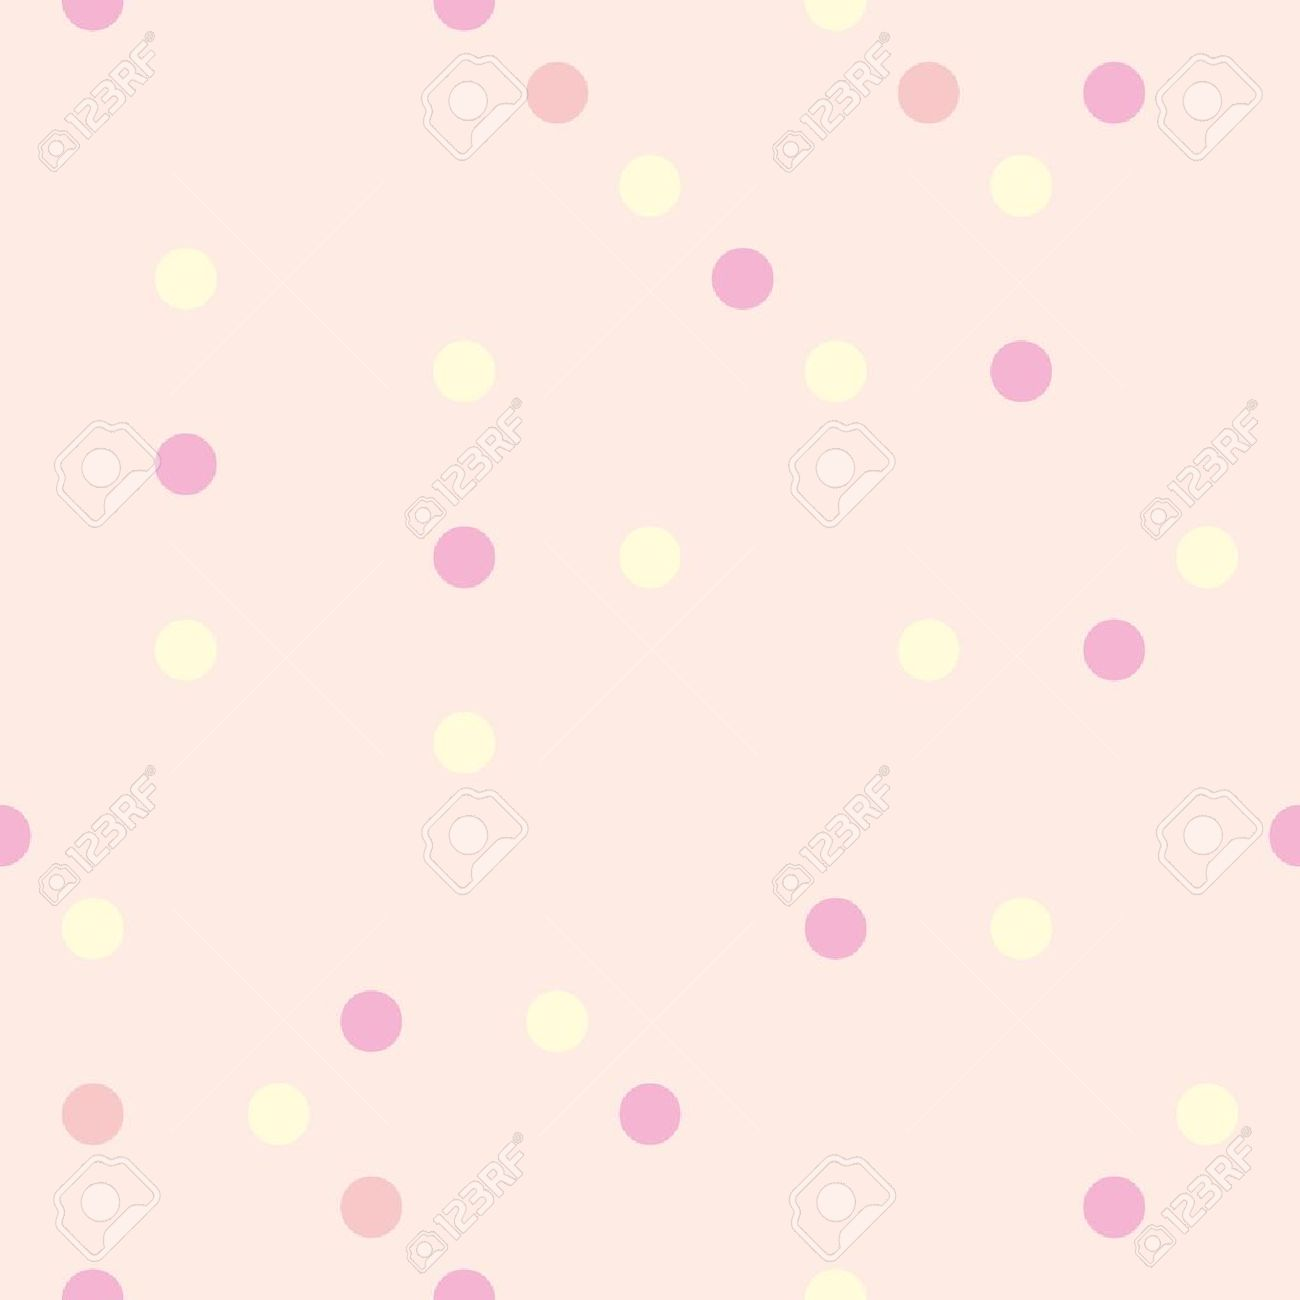 Colorful Vector Background With Yellow Red And Pink Polka Dots